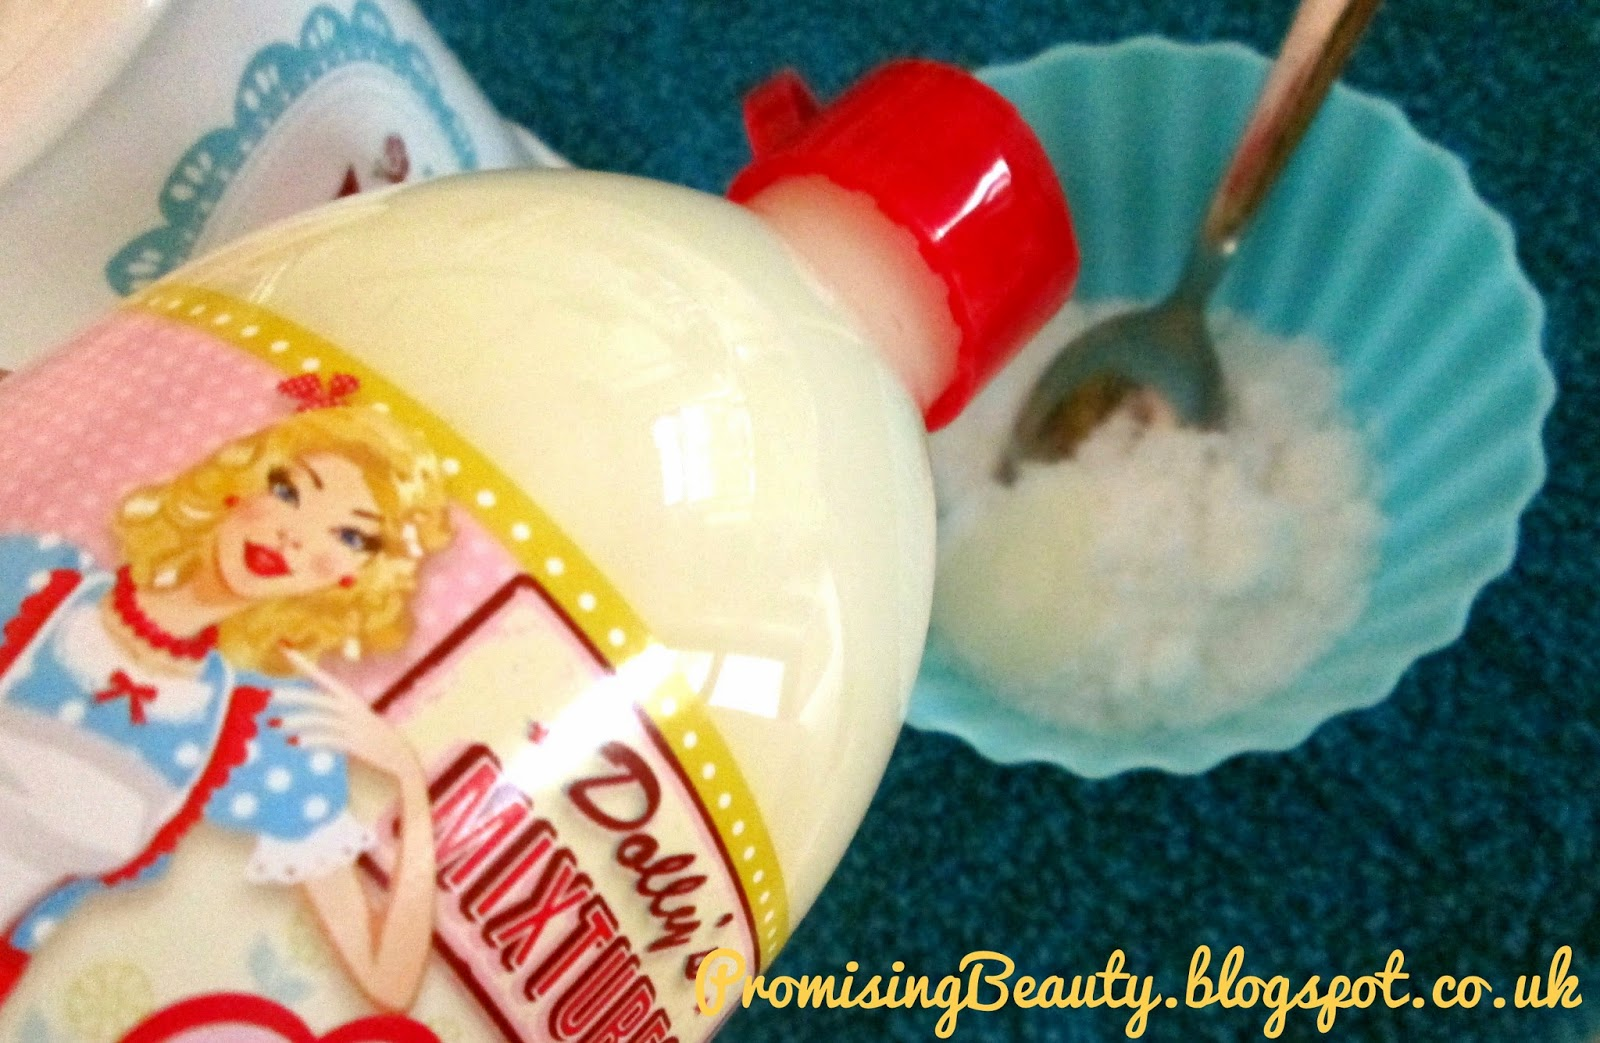 Easy diy body scrub. Dolly's mixtures bubble bath/shower gel in pina colada